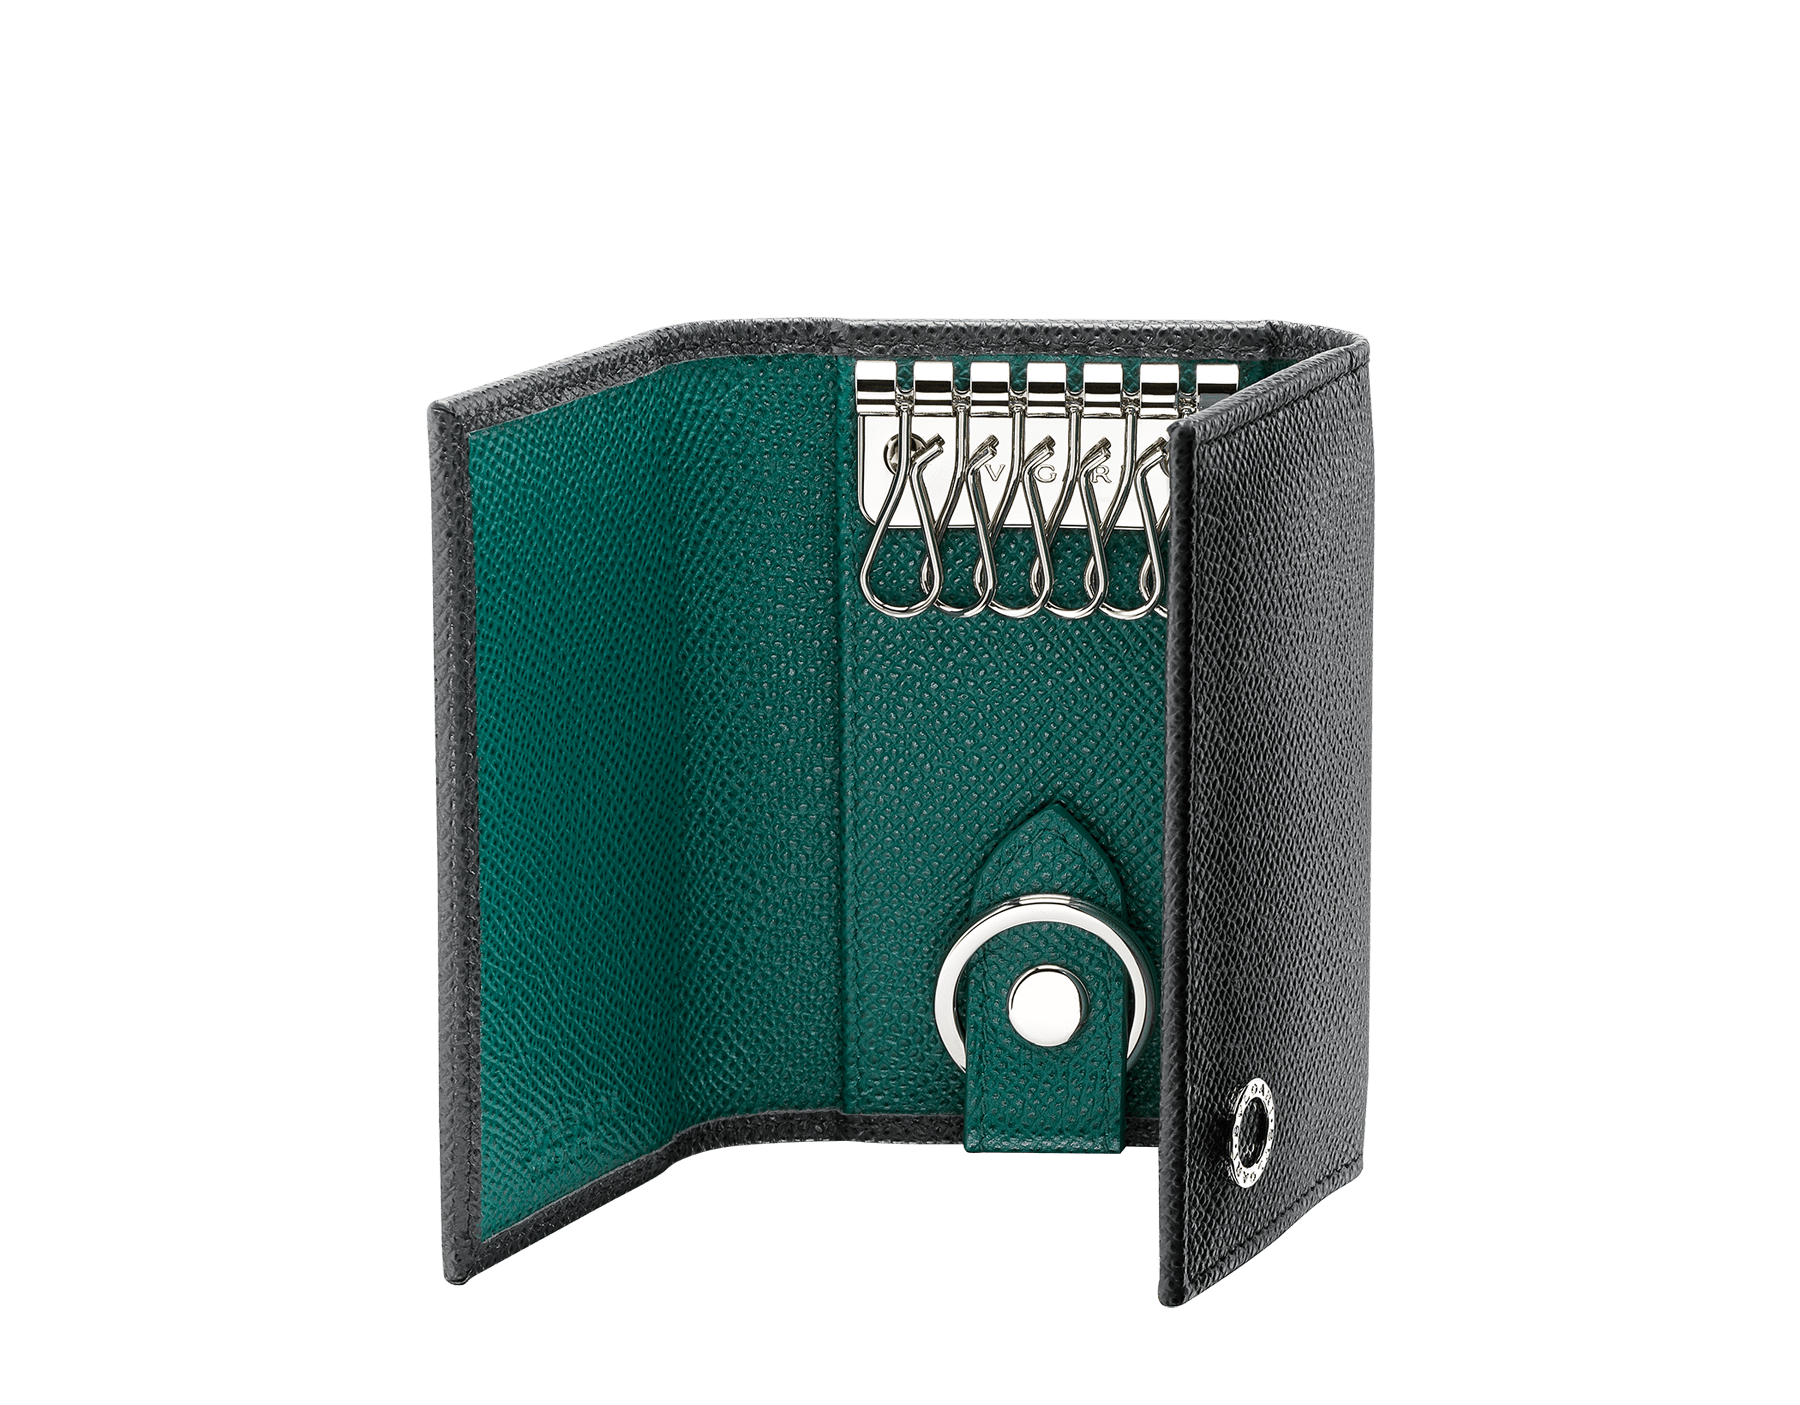 BVLGARI BVLGARI double keyholder in charcoal diamond and emerald green grain calf leather. Detachable car keyholder in palladium plated brass. 289132 image 2